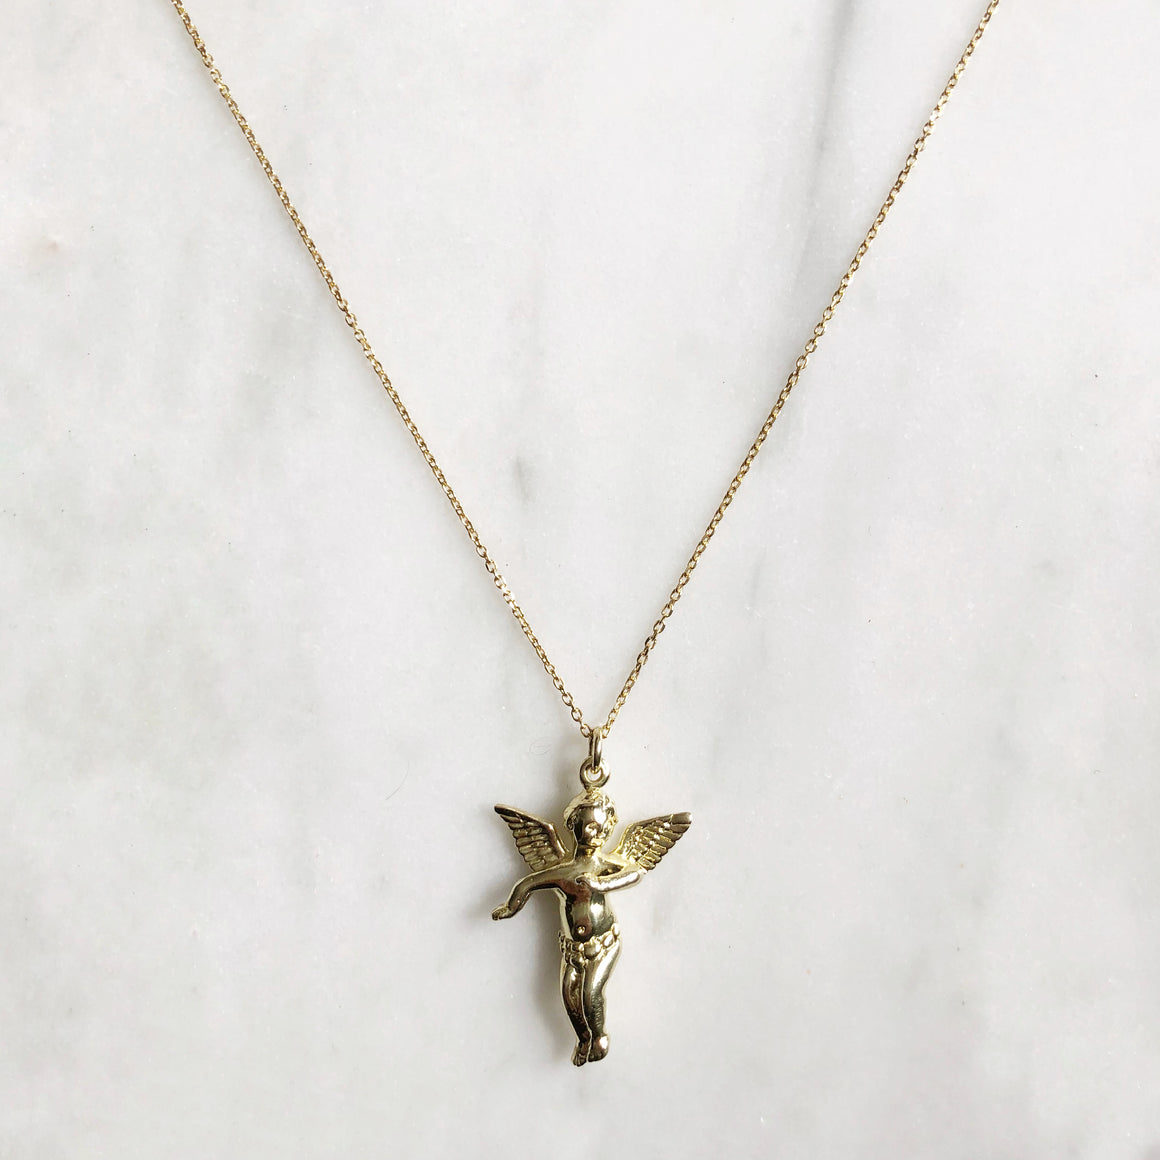 Gold Guardian Angel Necklace - good charma